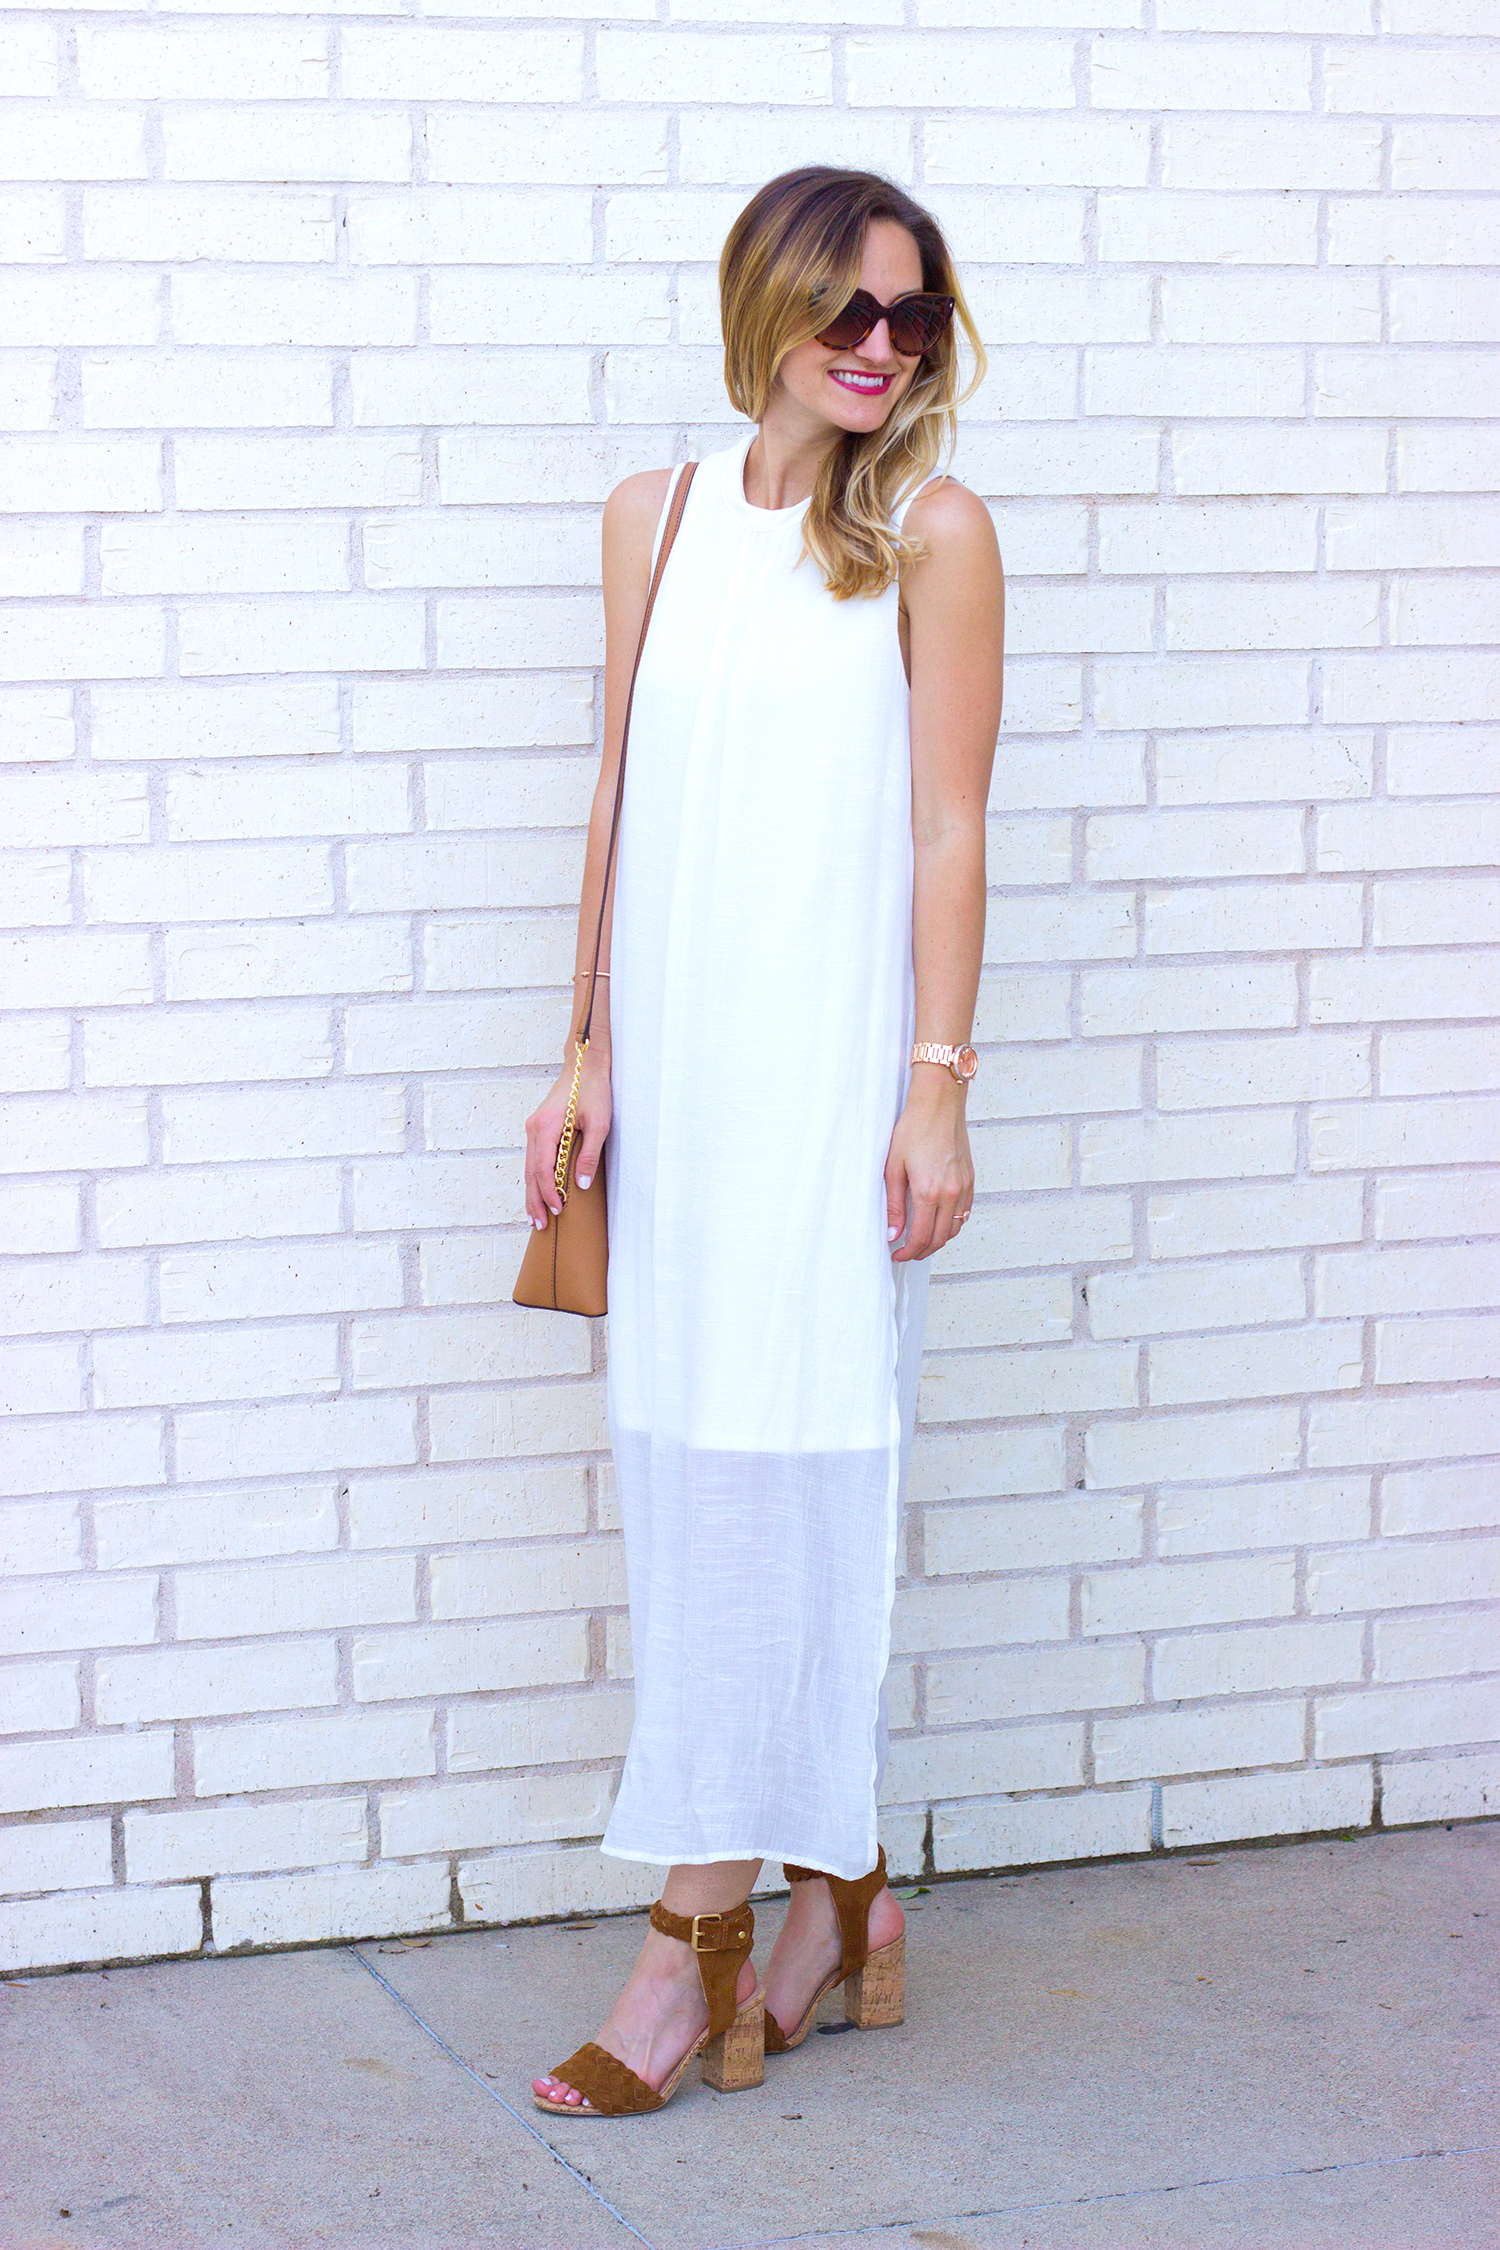 livvyland-blog-olivia-watson-white-sheer-midi-dress-painted-threads-braided-sandal-heels-austin-texas-fashion-blogger-rose-gold-kendra-scott-prada-cateye-sunglasses-spring-outfit-6